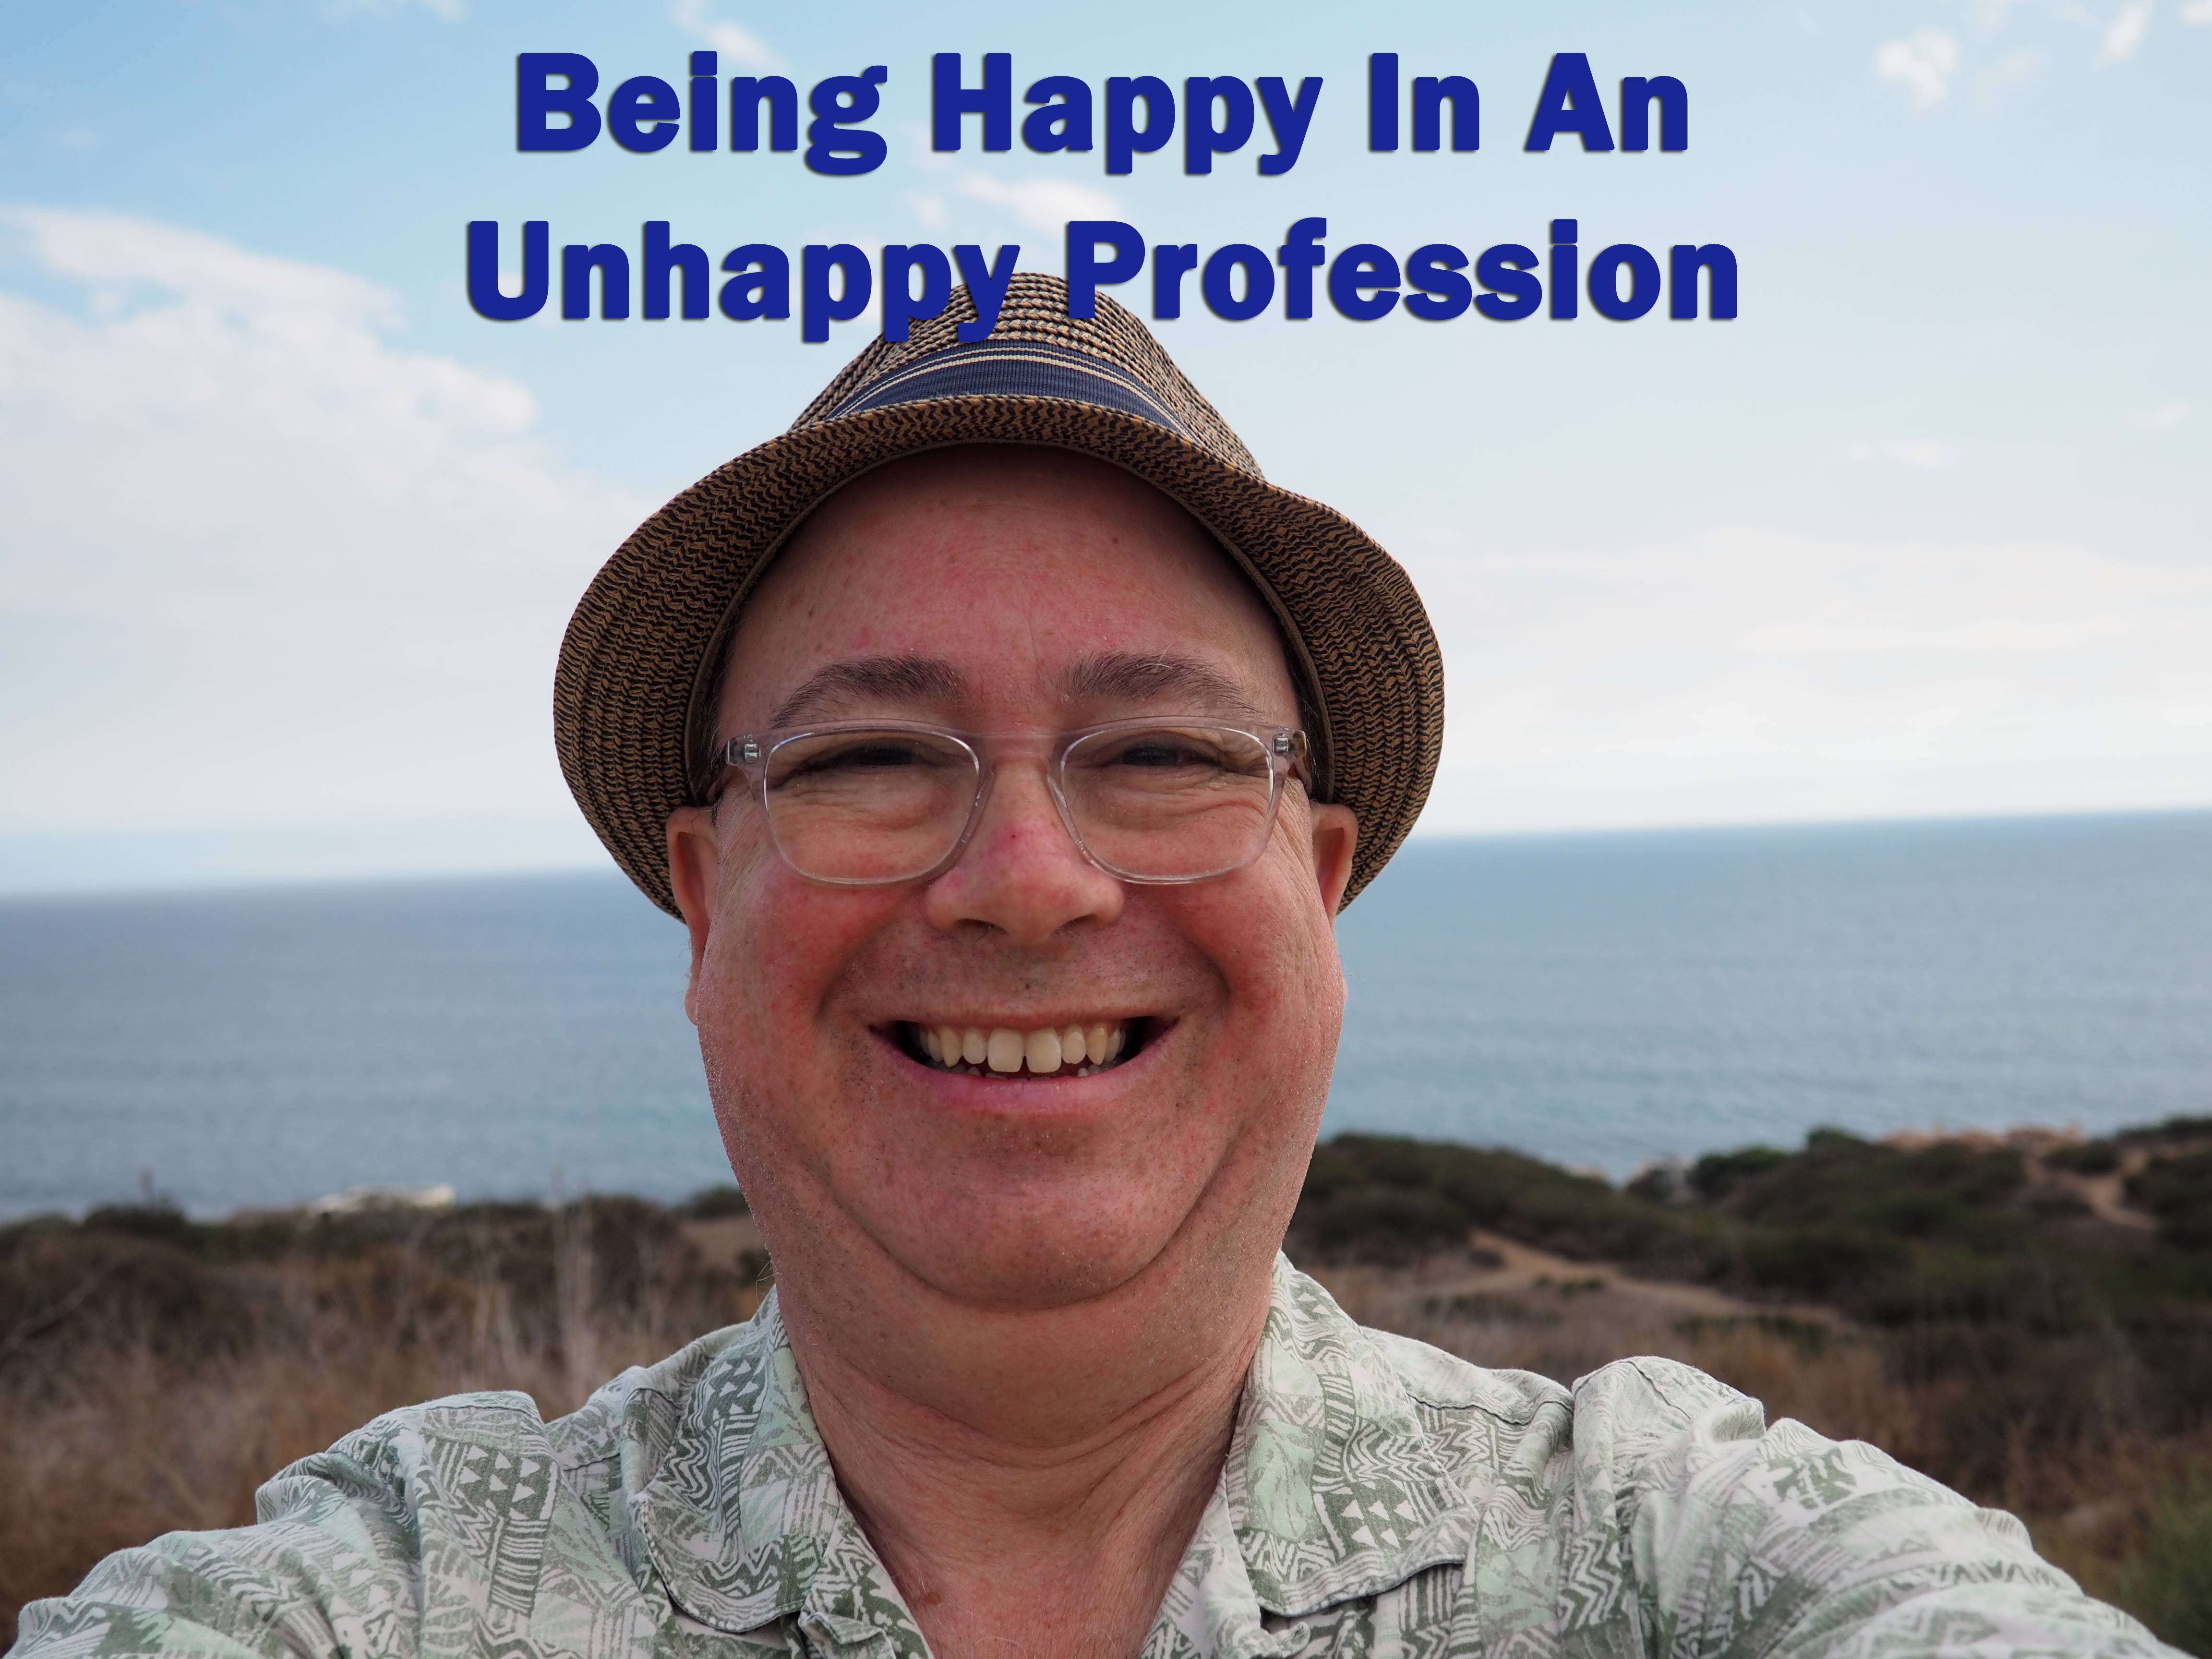 Happiness in An Unhappy Profession